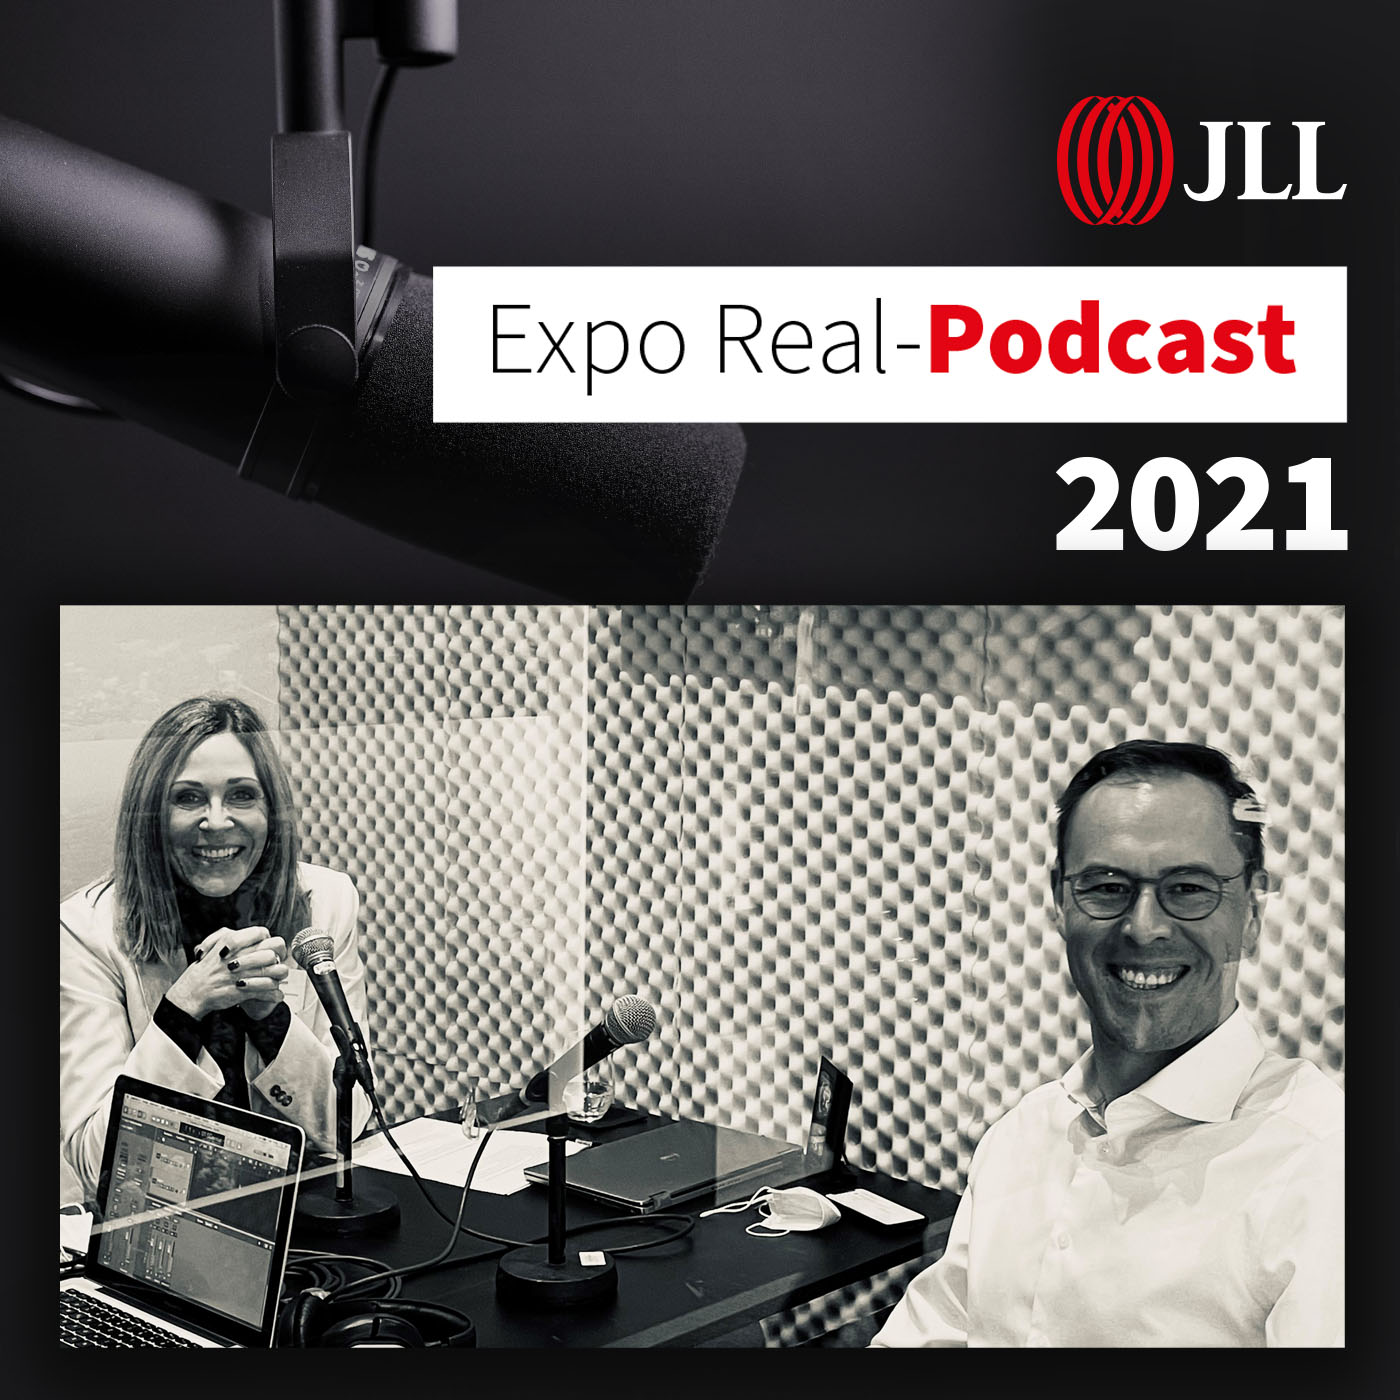 Artwork for podcast JLL Expo Real-Podcast 2021